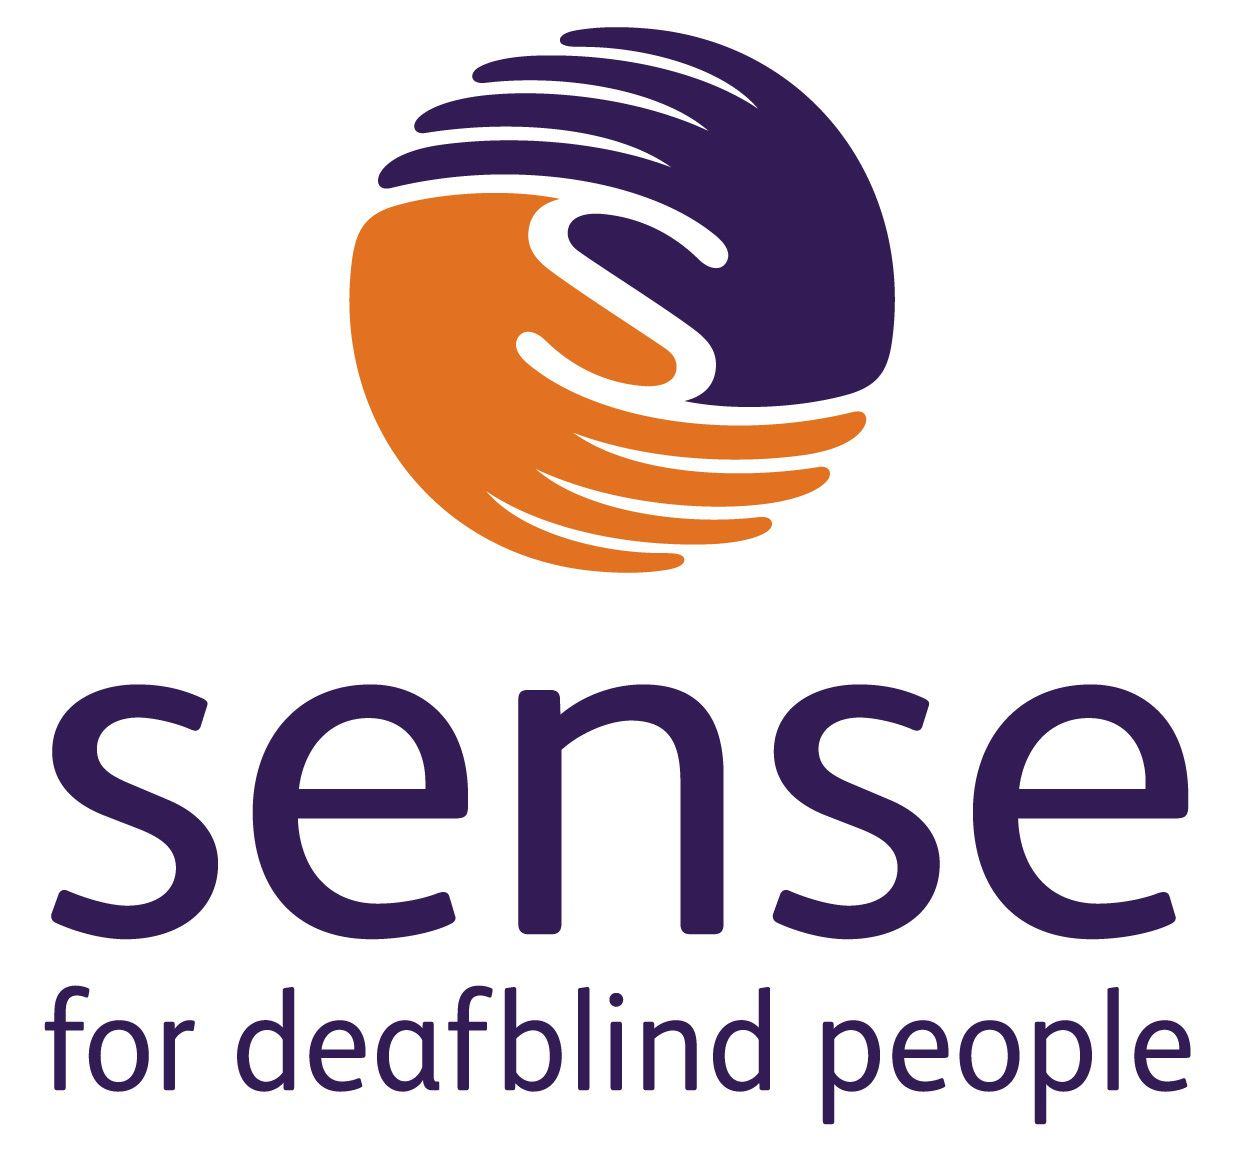 Sense charity for deaf & blind people. Imagine. | Charity ...